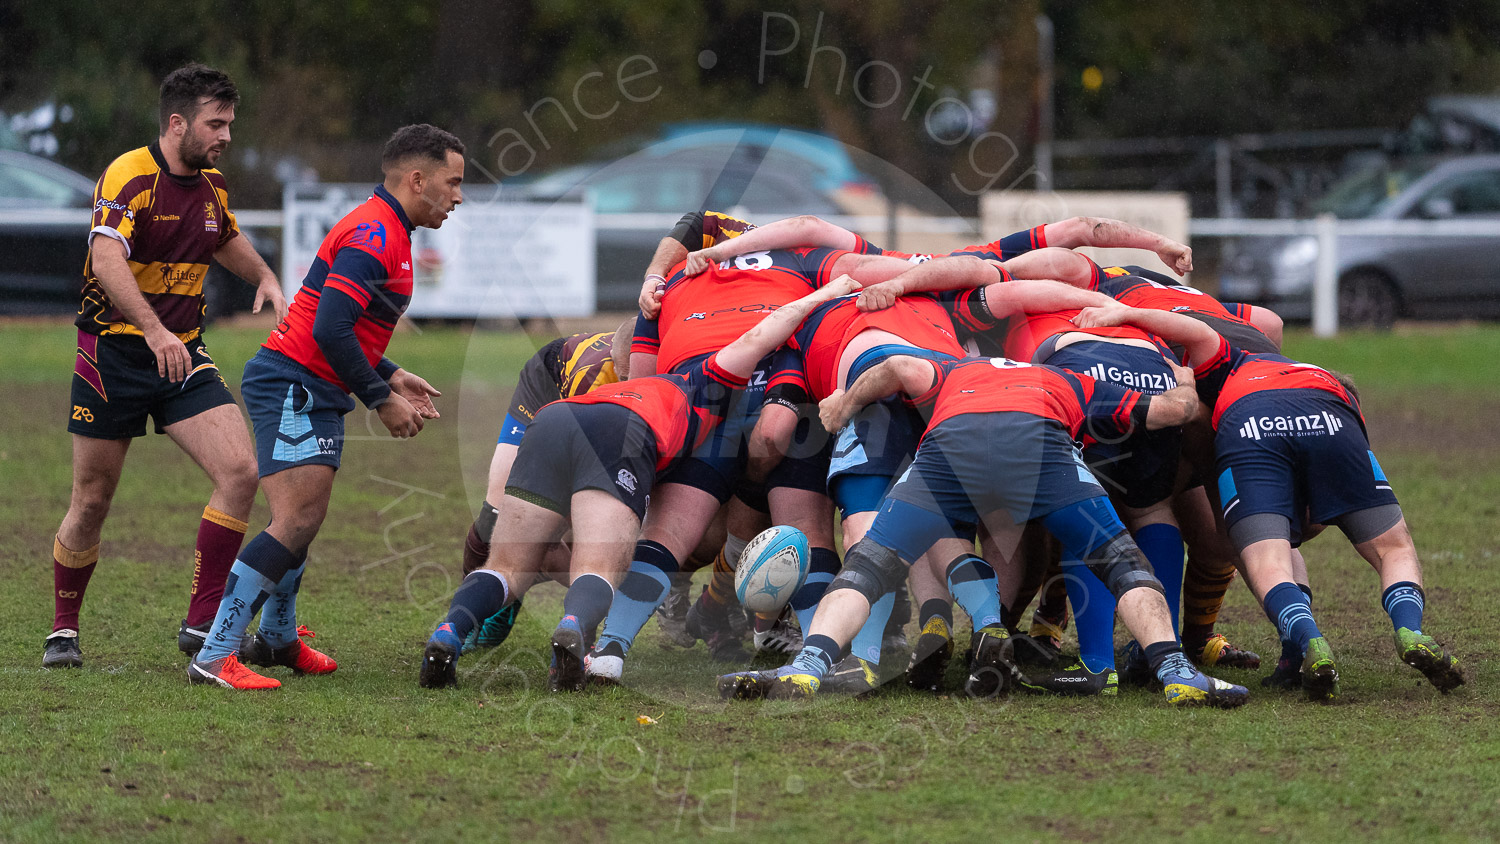 20181027 Amp Extras vs St Neots 2nd XV #2662